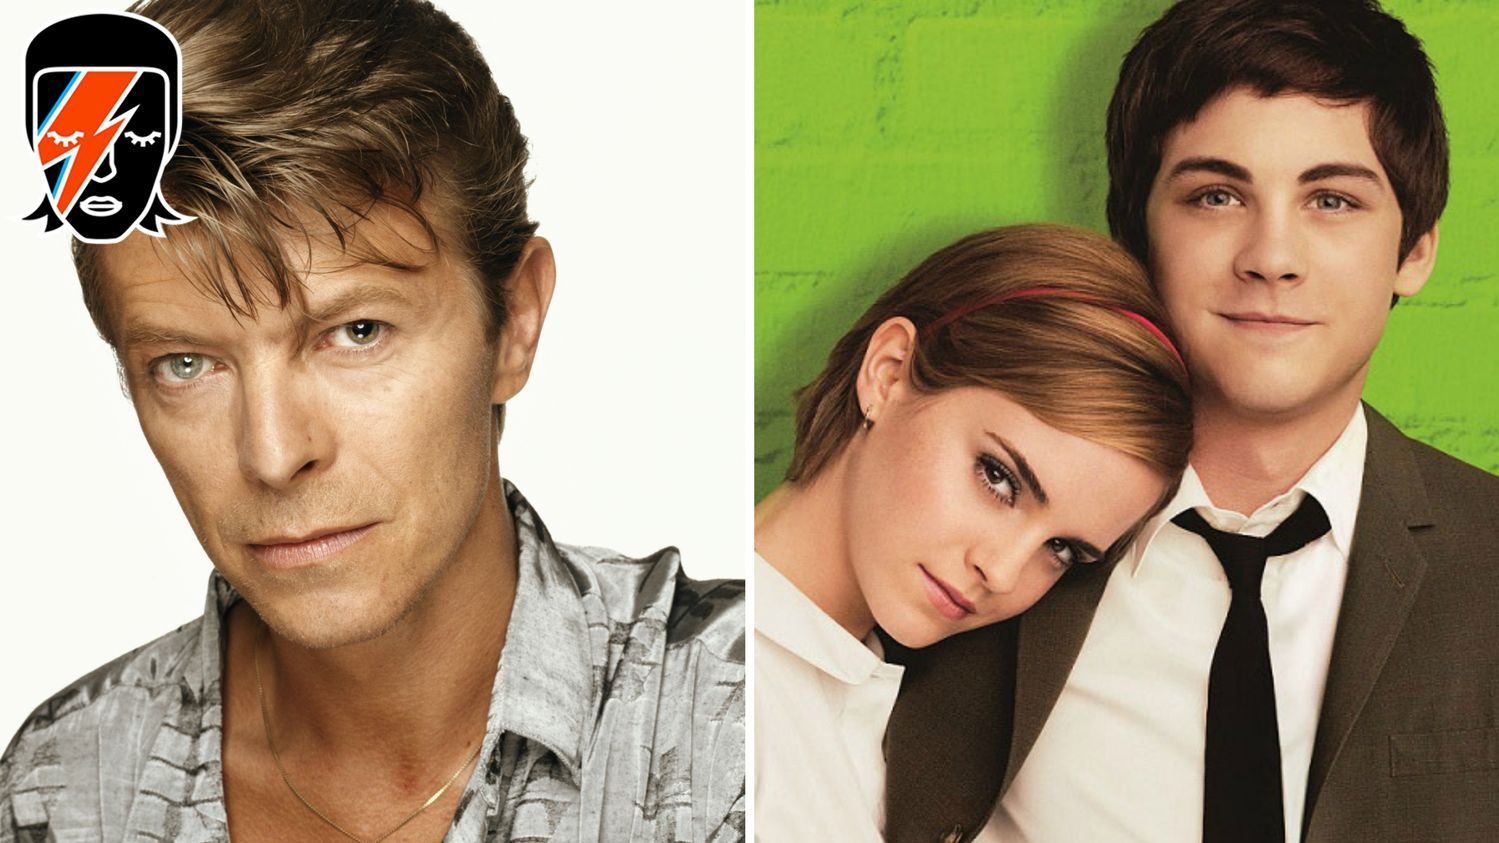 David Bowie's Big Moment In 'The Perks Of Being A Wallflower